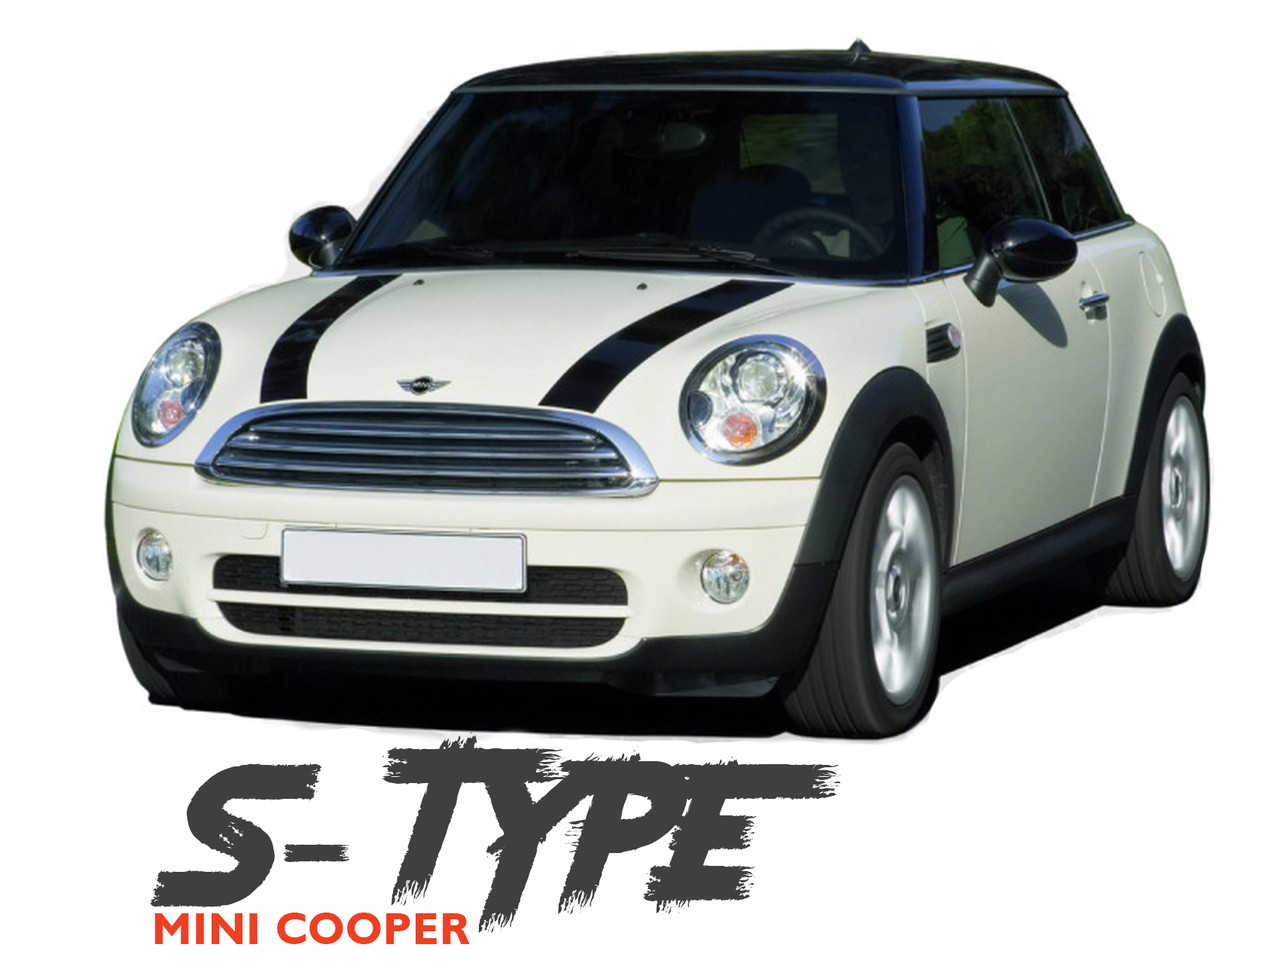 Mini Cooper S Type Hood Split Hood Striping Vinyl Graphics Decals